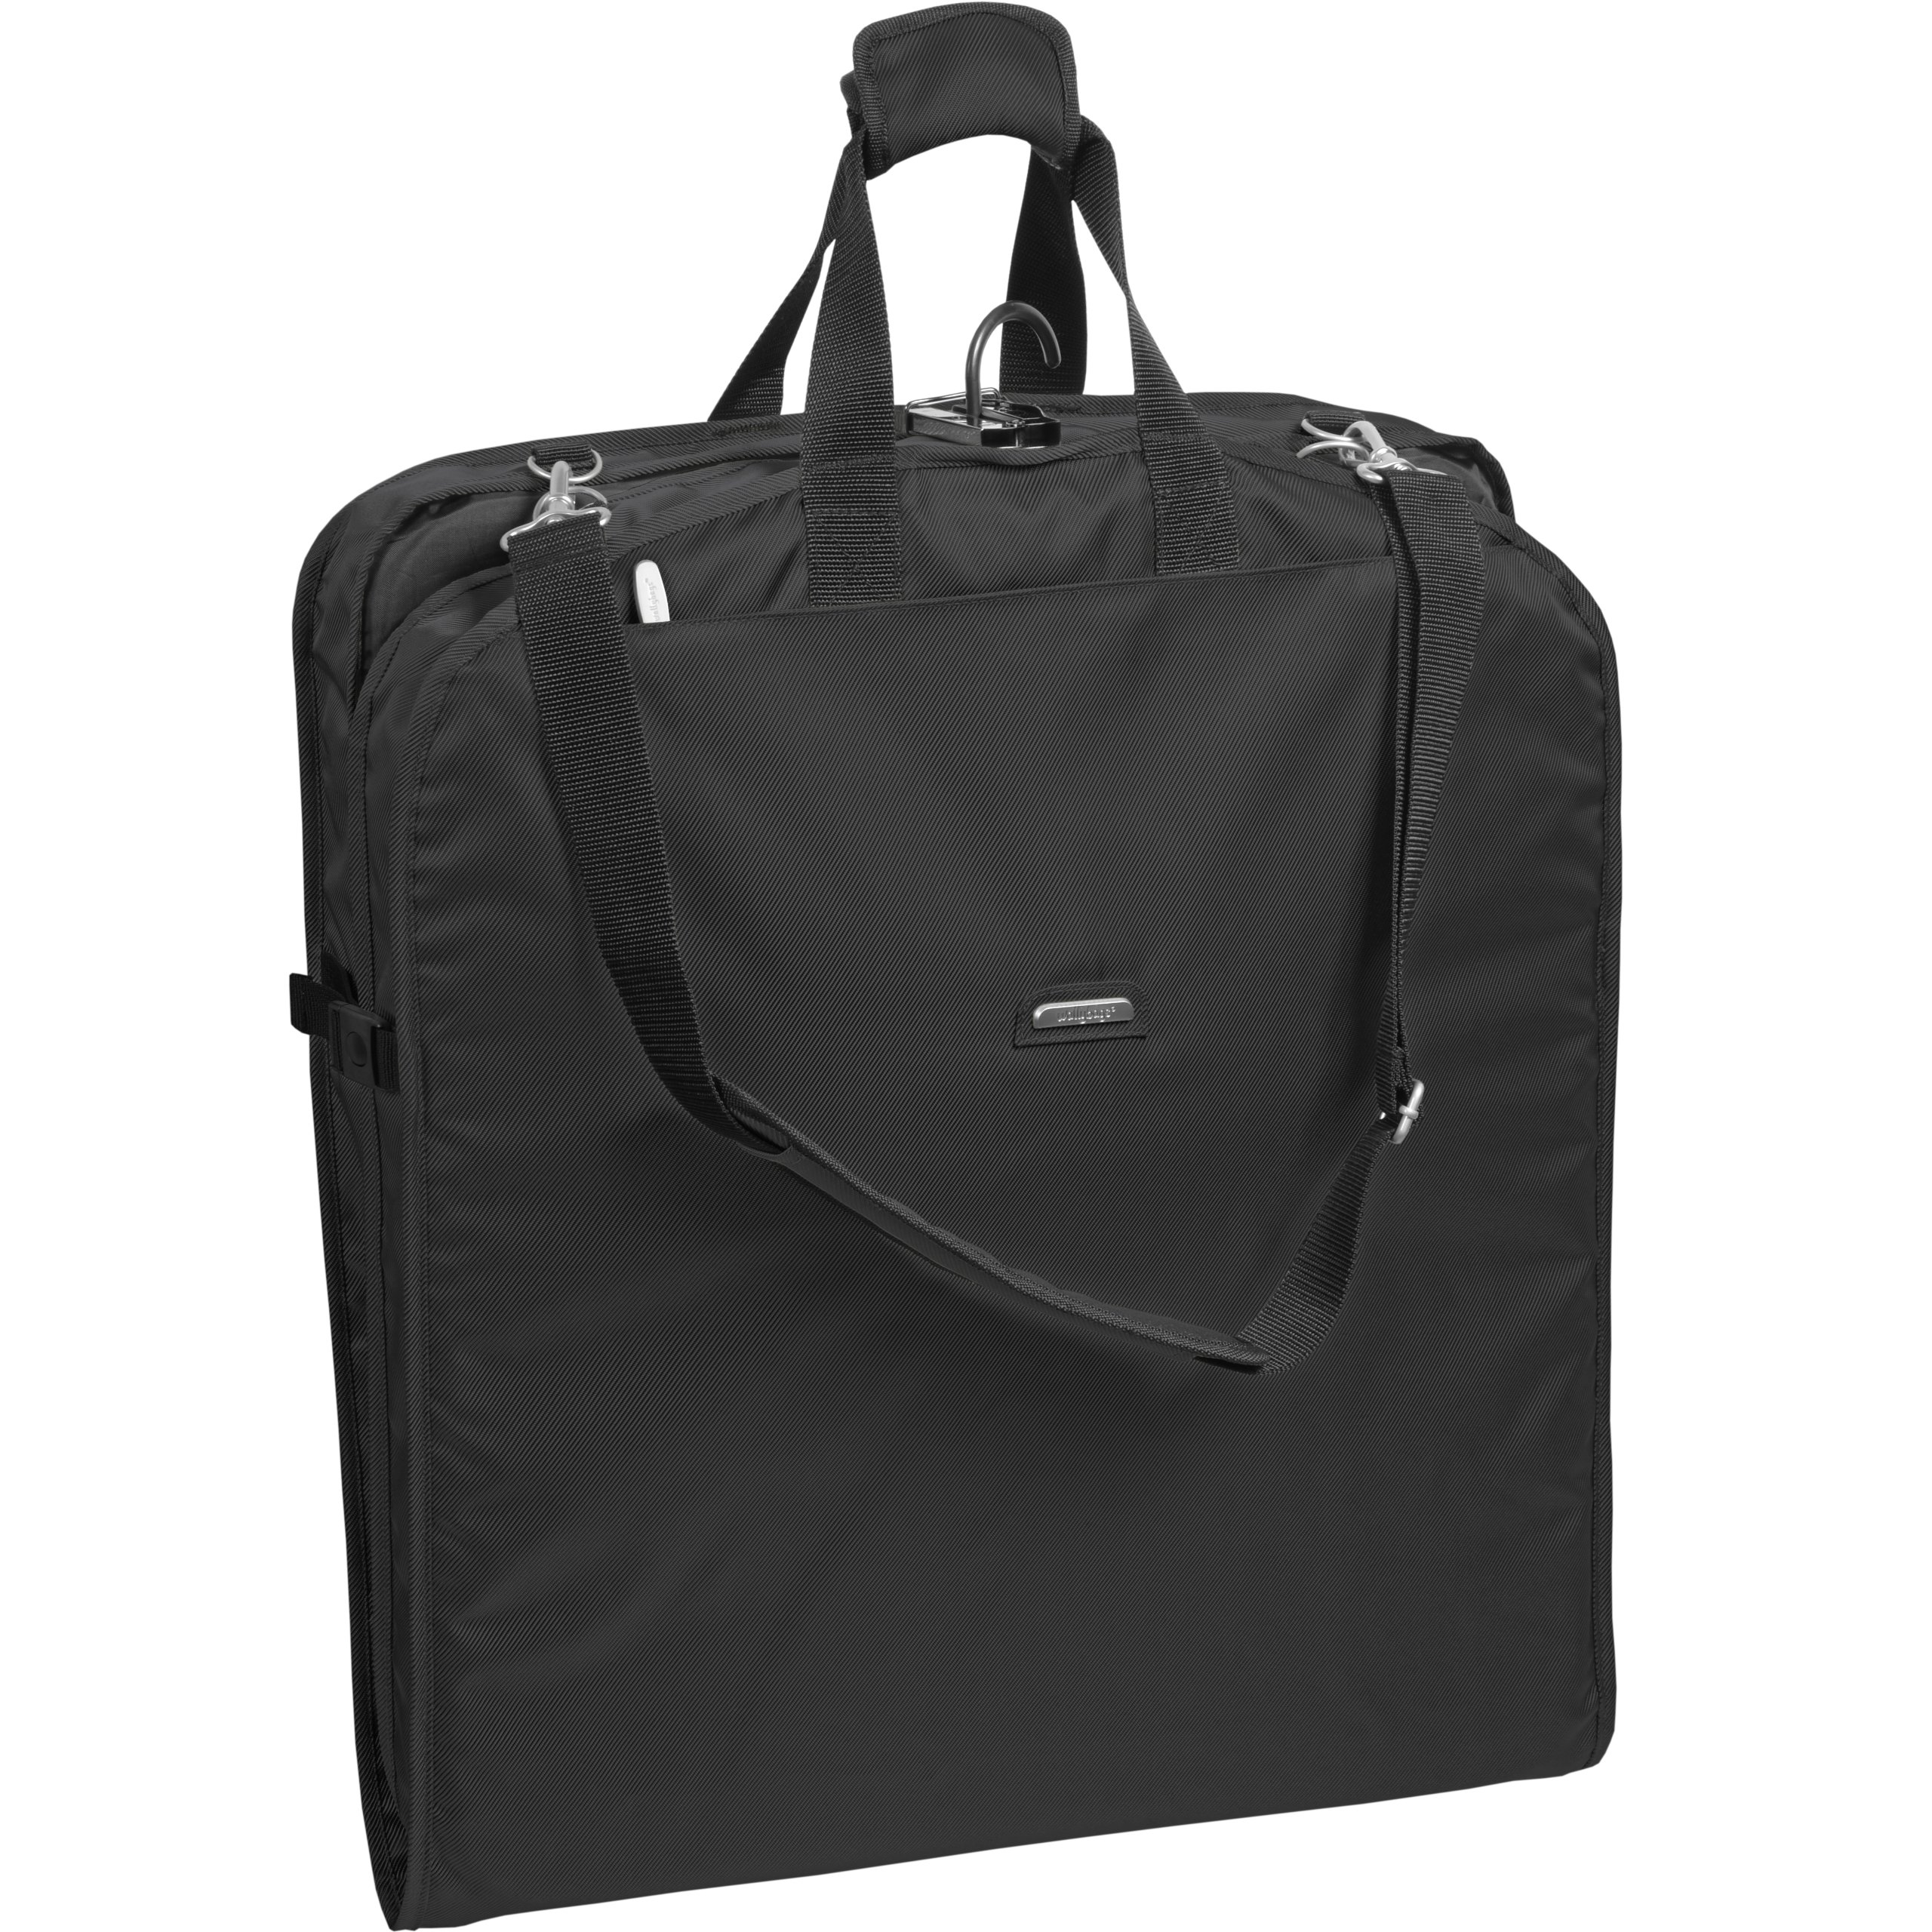 "WallyBags Luggage 42"" Shoulder Strap Garment Bag, Black"